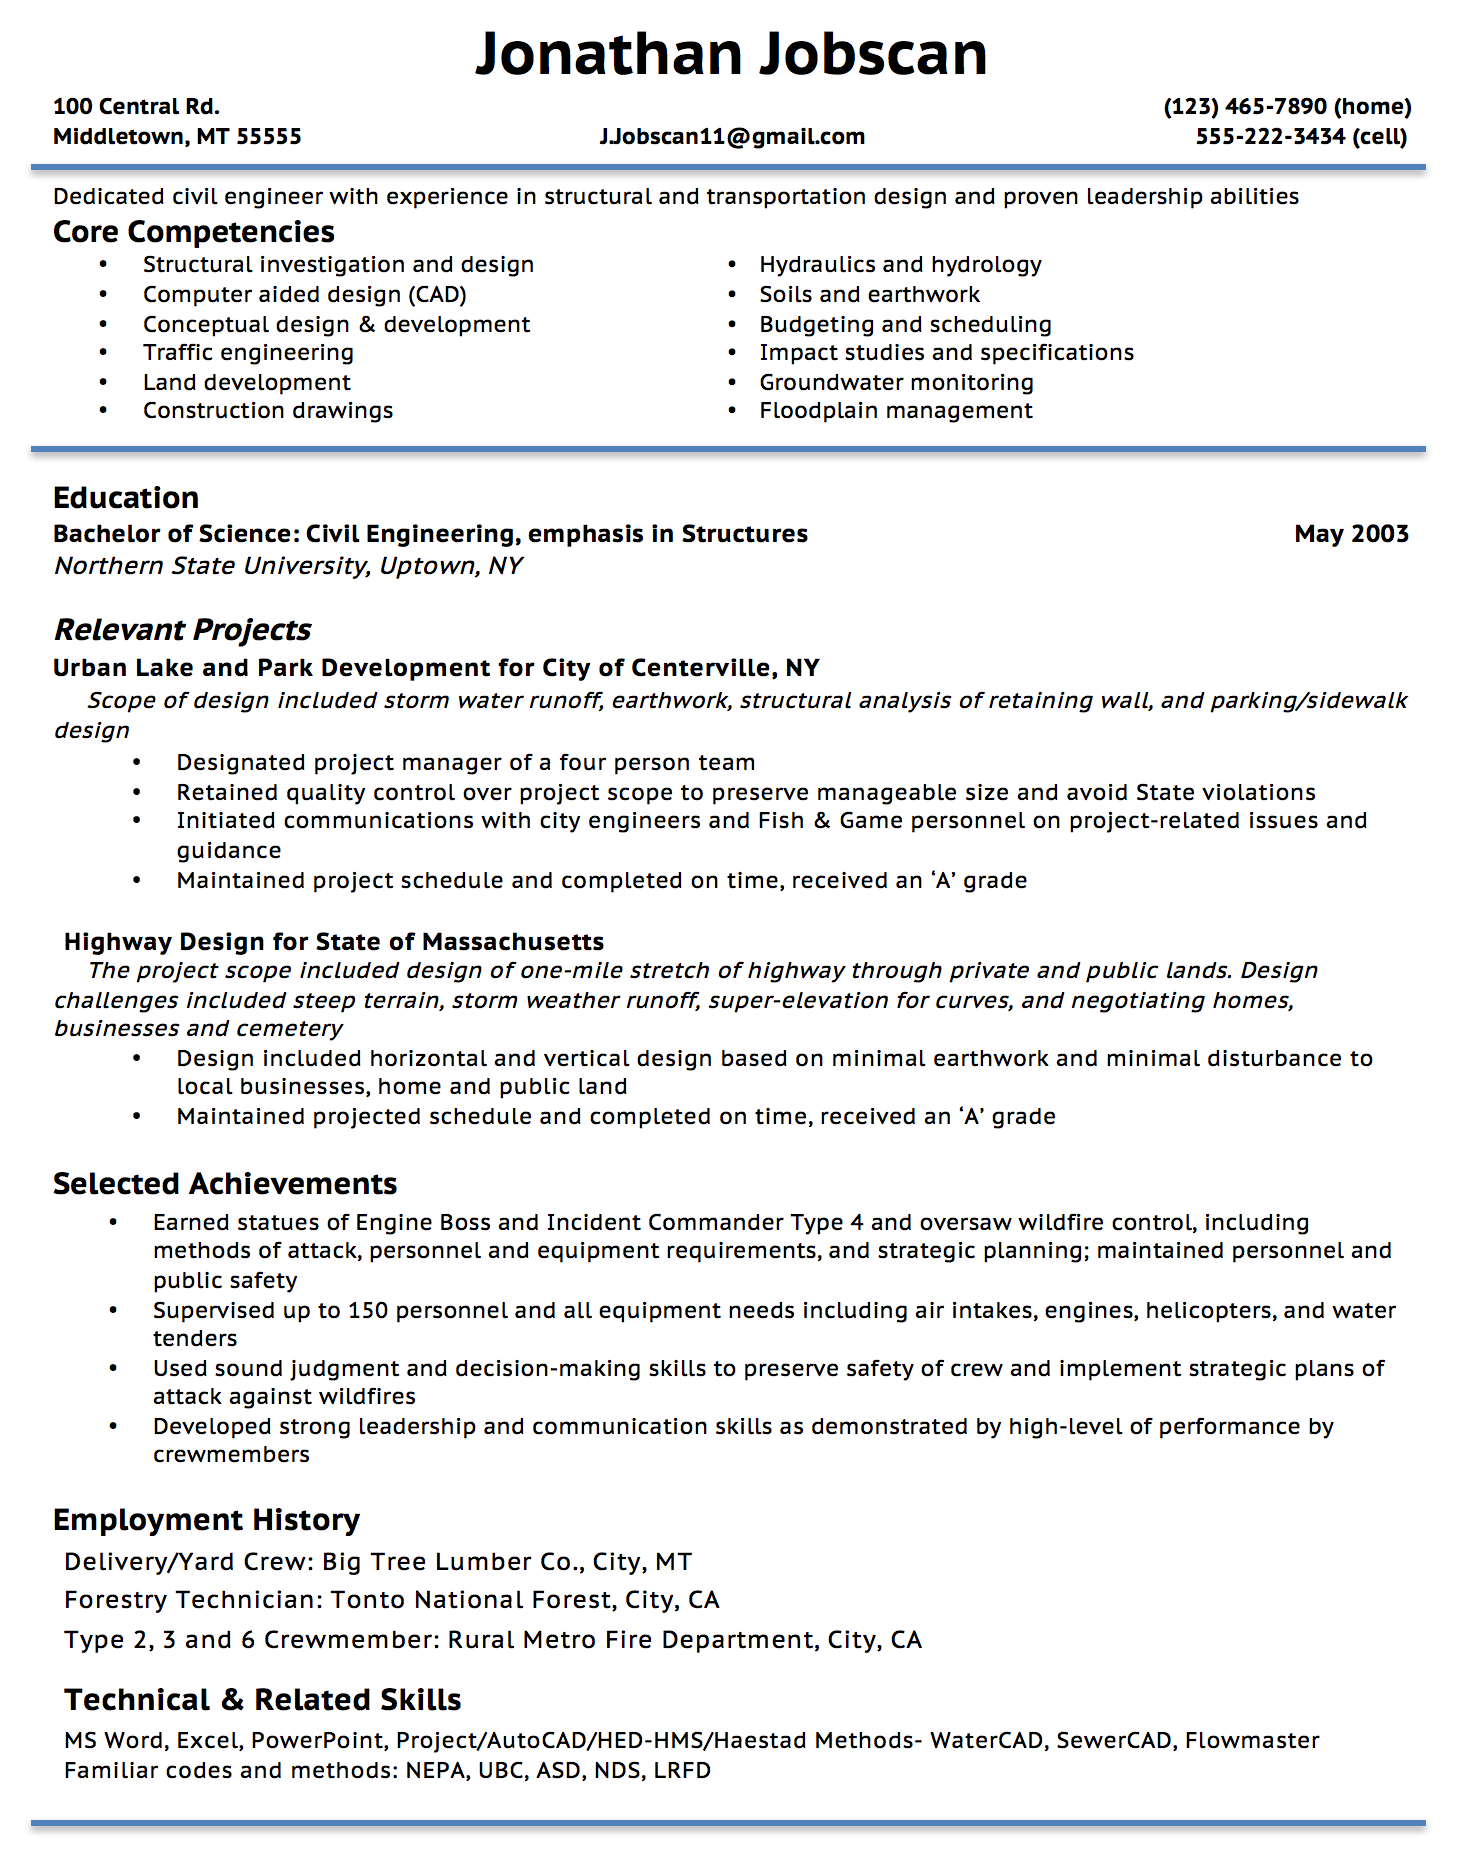 covering gaps in employment - Format For Making A Resume